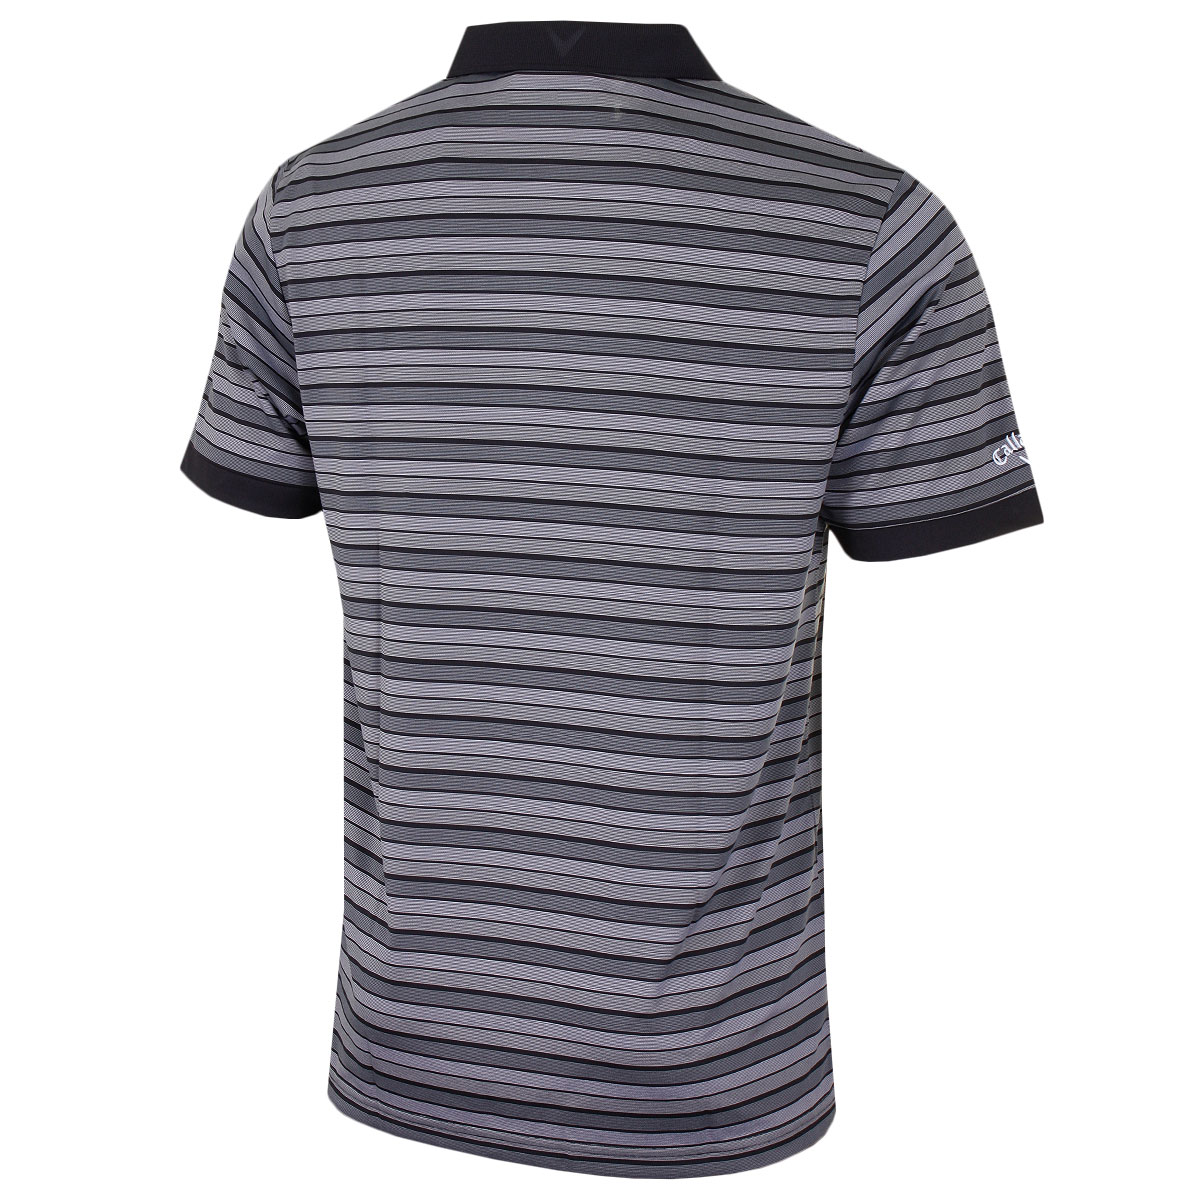 Callaway-Golf-Mens-Fine-Line-Opti-Dri-Striped-Polo-Shirt-CGKS7045-49-OFF-RRP thumbnail 3